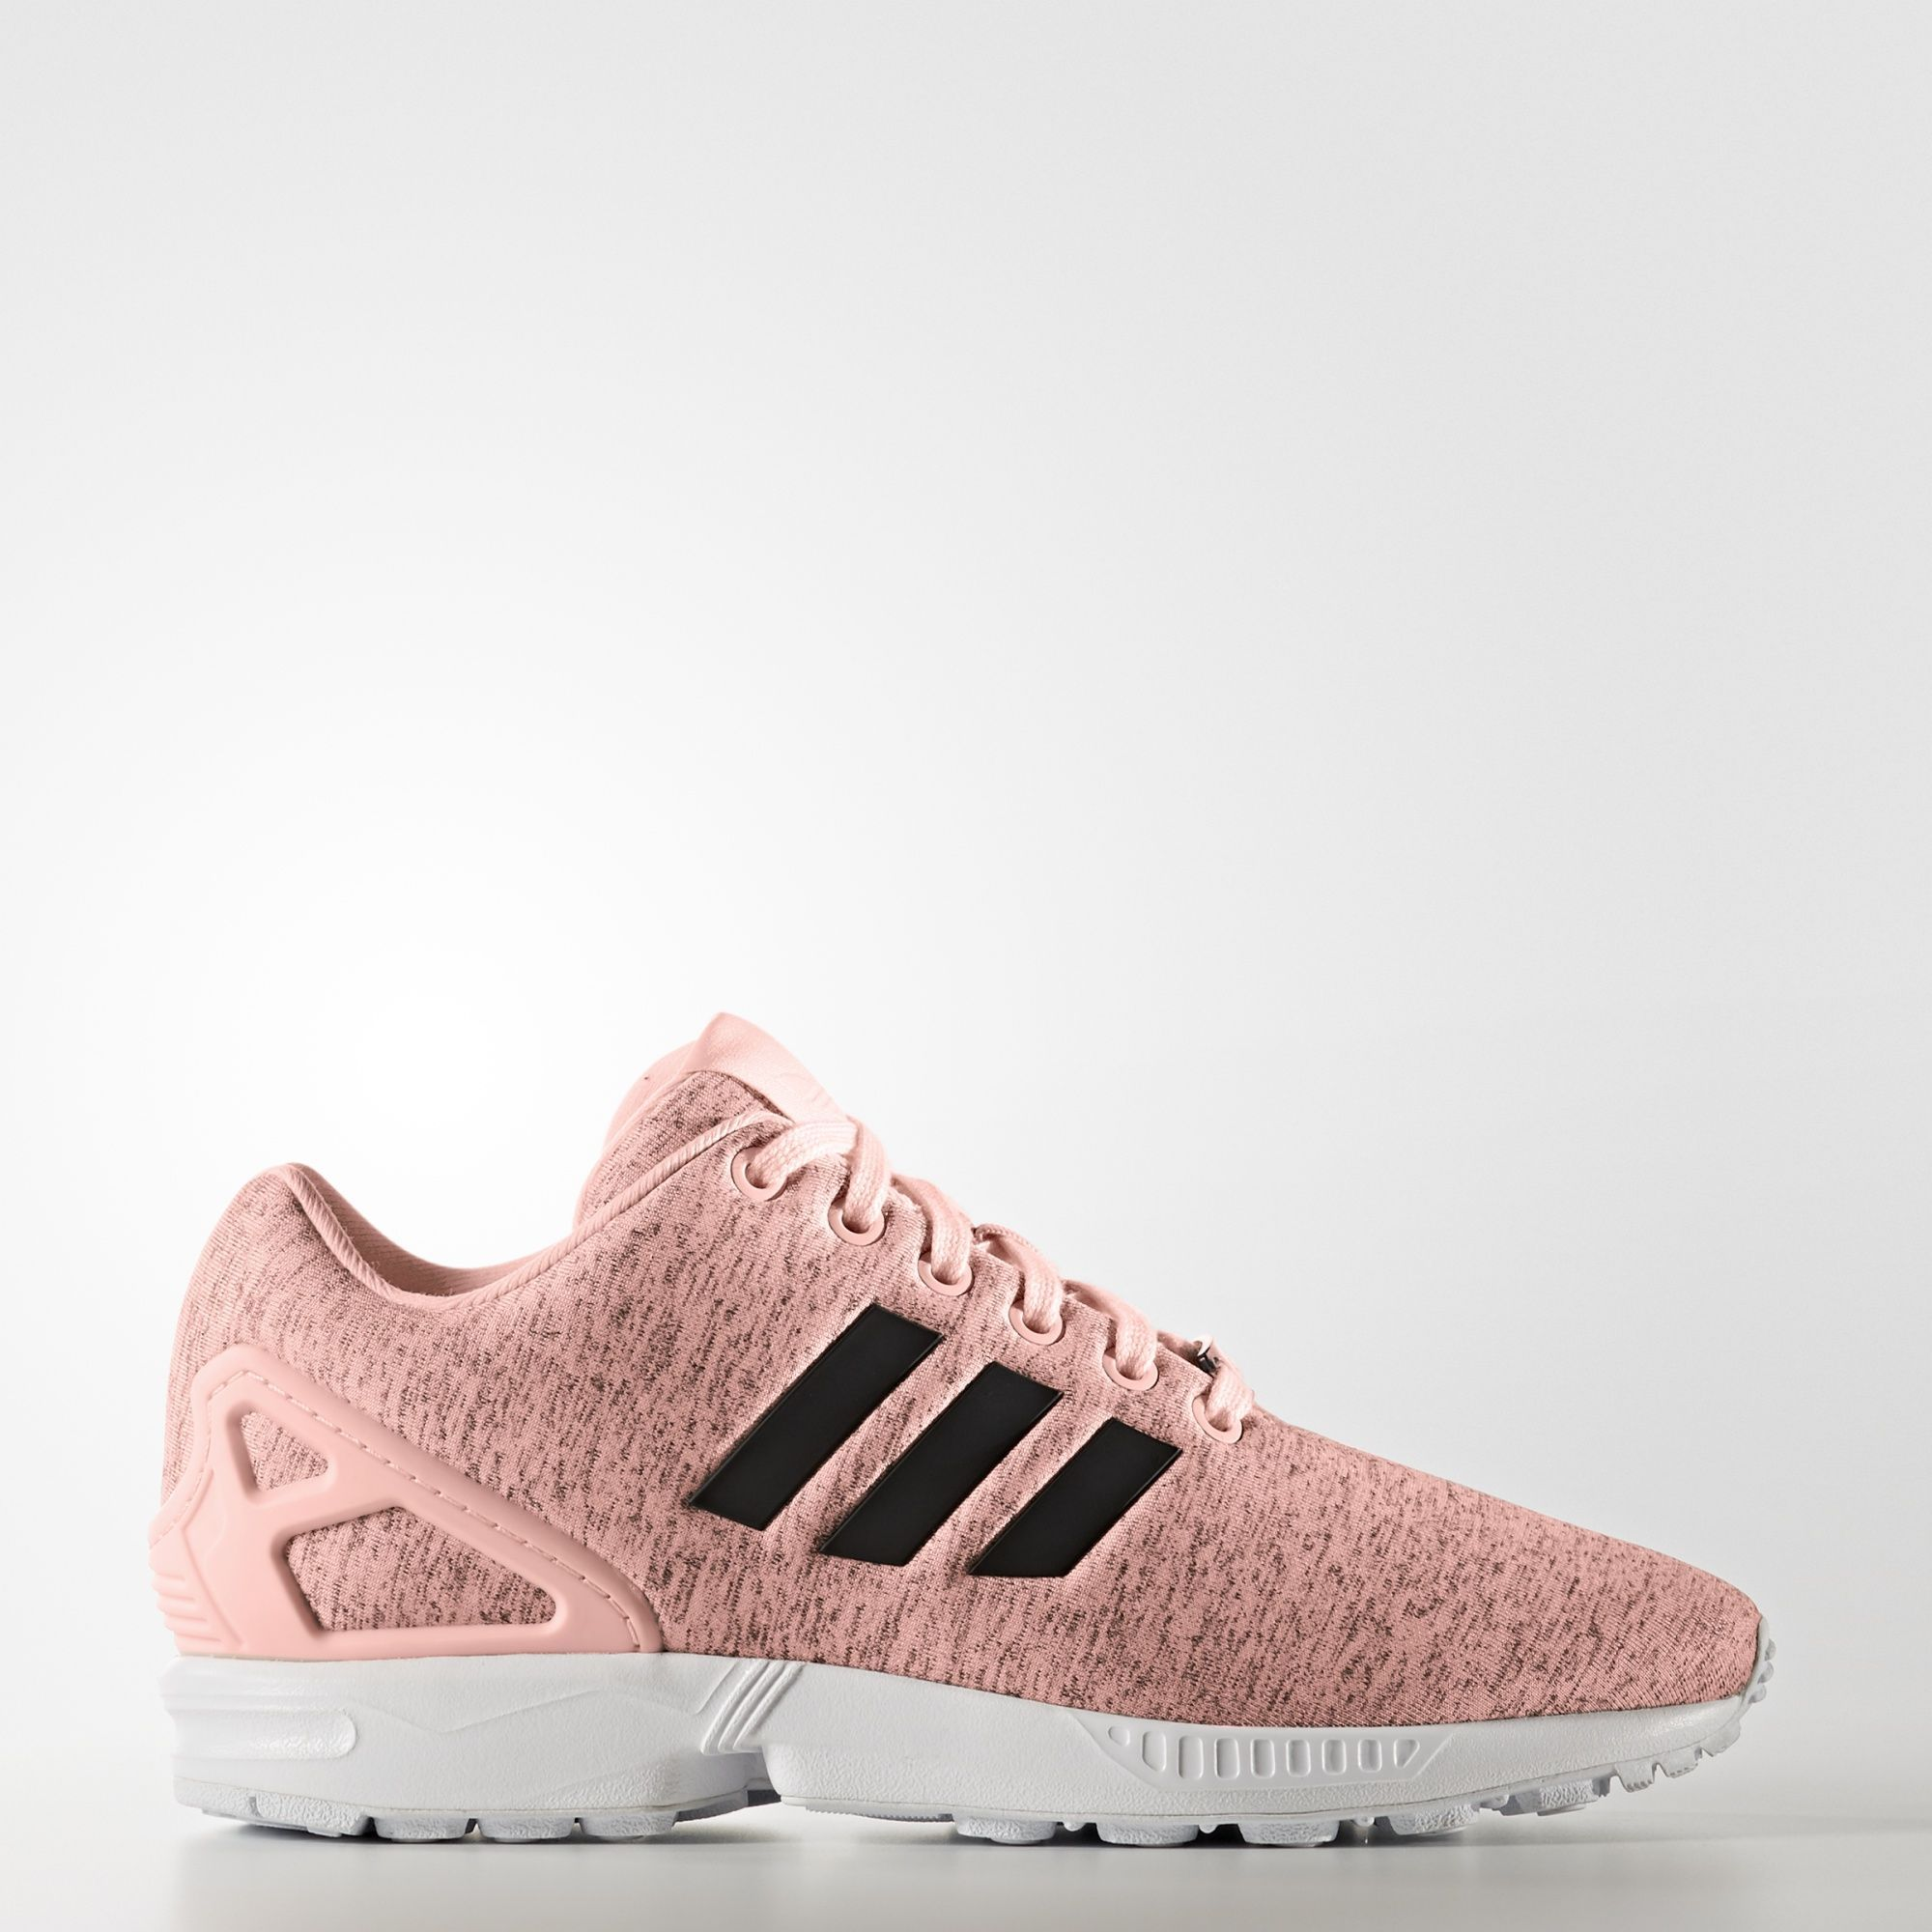 adidas nmd r1 womens midnight grey adidas zx flux shoes black and rose gold